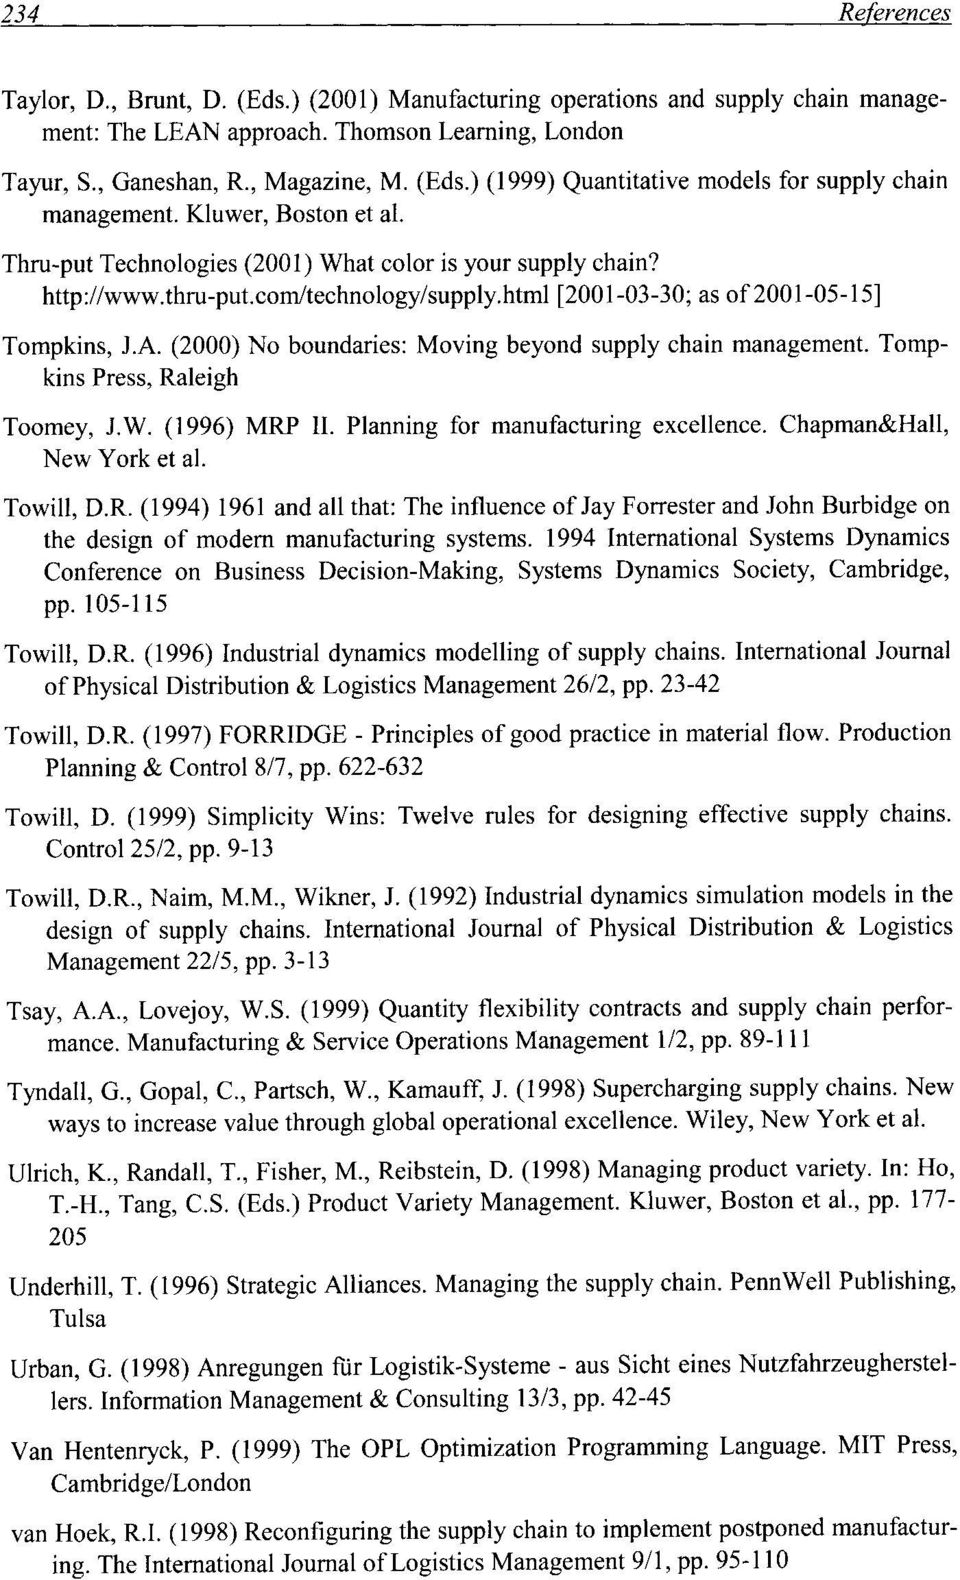 (2000) No boundaries: Moving beyond supply chain management. Tompkins Press, Raleigh Toomey, lw. (1996) MRP II. Planning for manufacturing excellence. Chapman&Hall, New York et al. Towill, D.R. (1994) 1961 and all that: The influence of Jay Forrester and John Burbidge on the design of modem manufacturing systems.